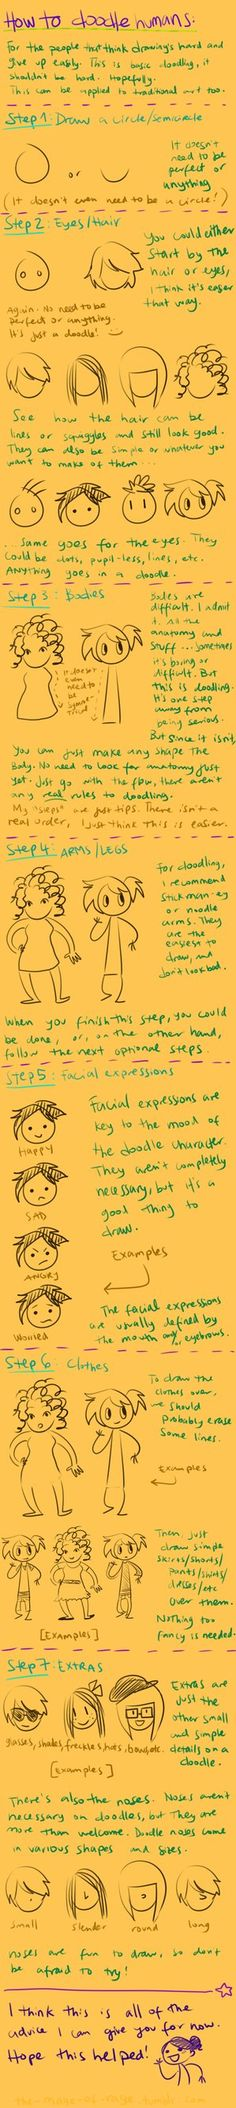 doodling tutorial by ~Mistakes13 on deviantART